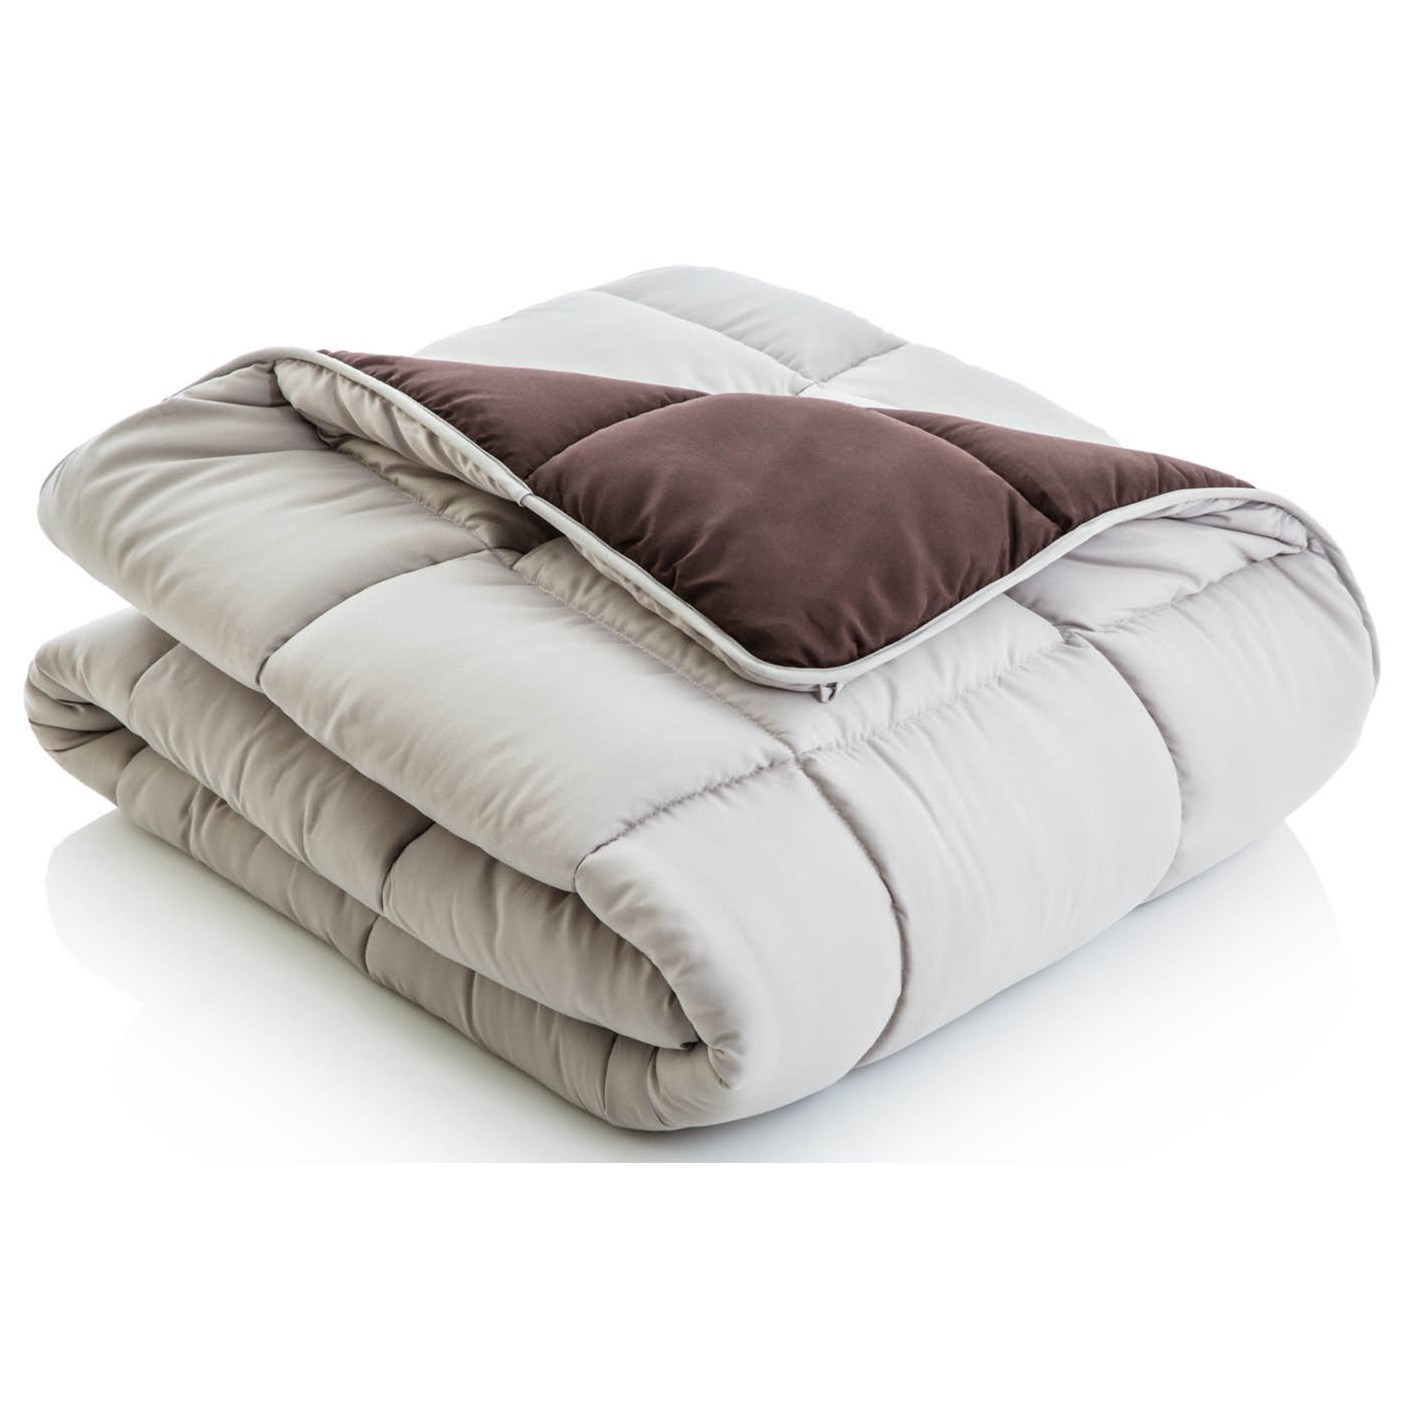 Reversible Bed in a Bag Twin XL Reversible Bed in a Bag by Malouf at Rife's Home Furniture